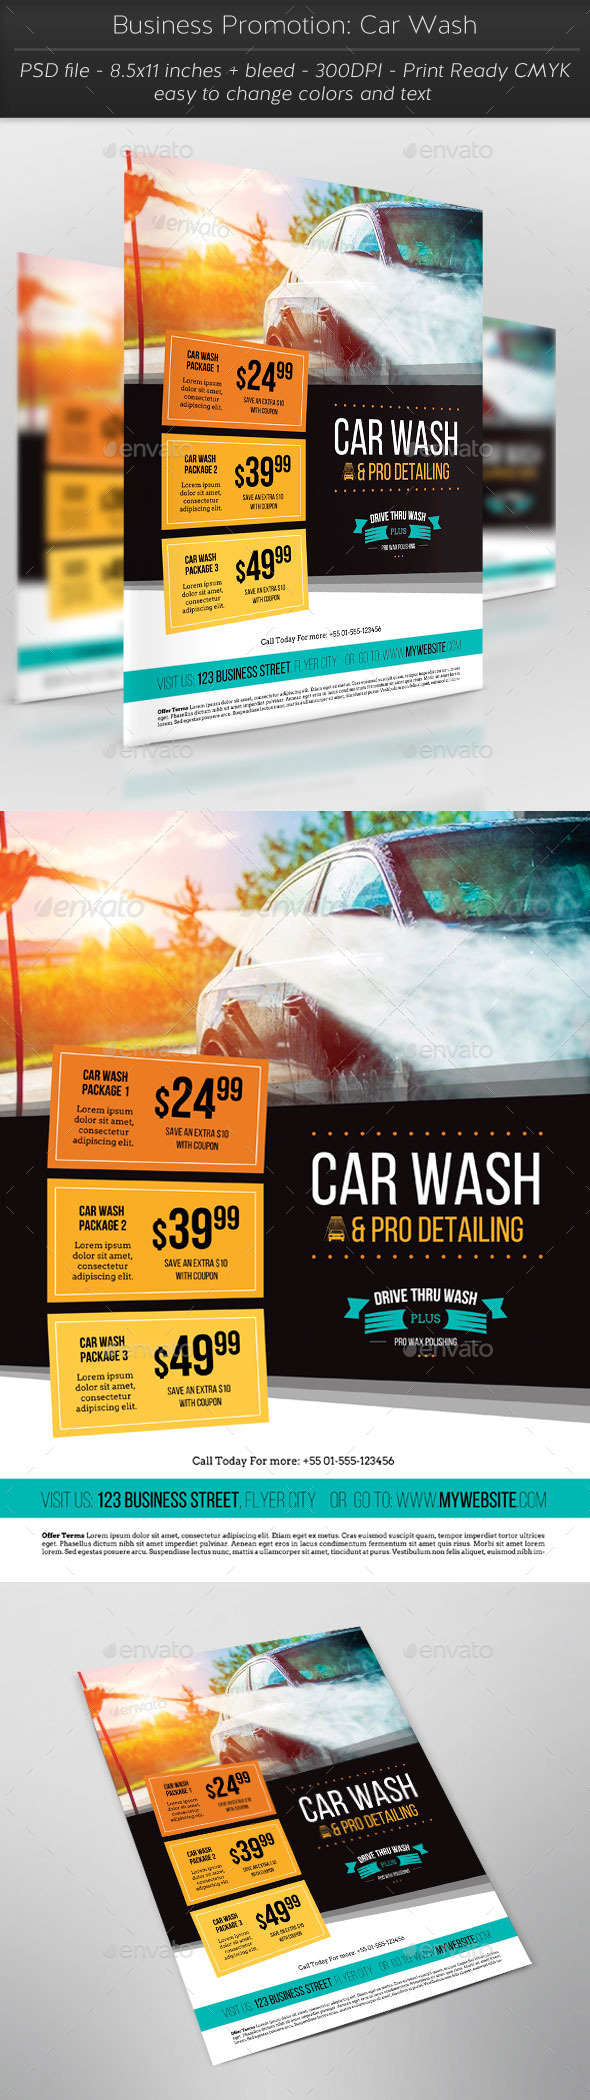 GraphicRiver Business Promotion Car Wash 11448967